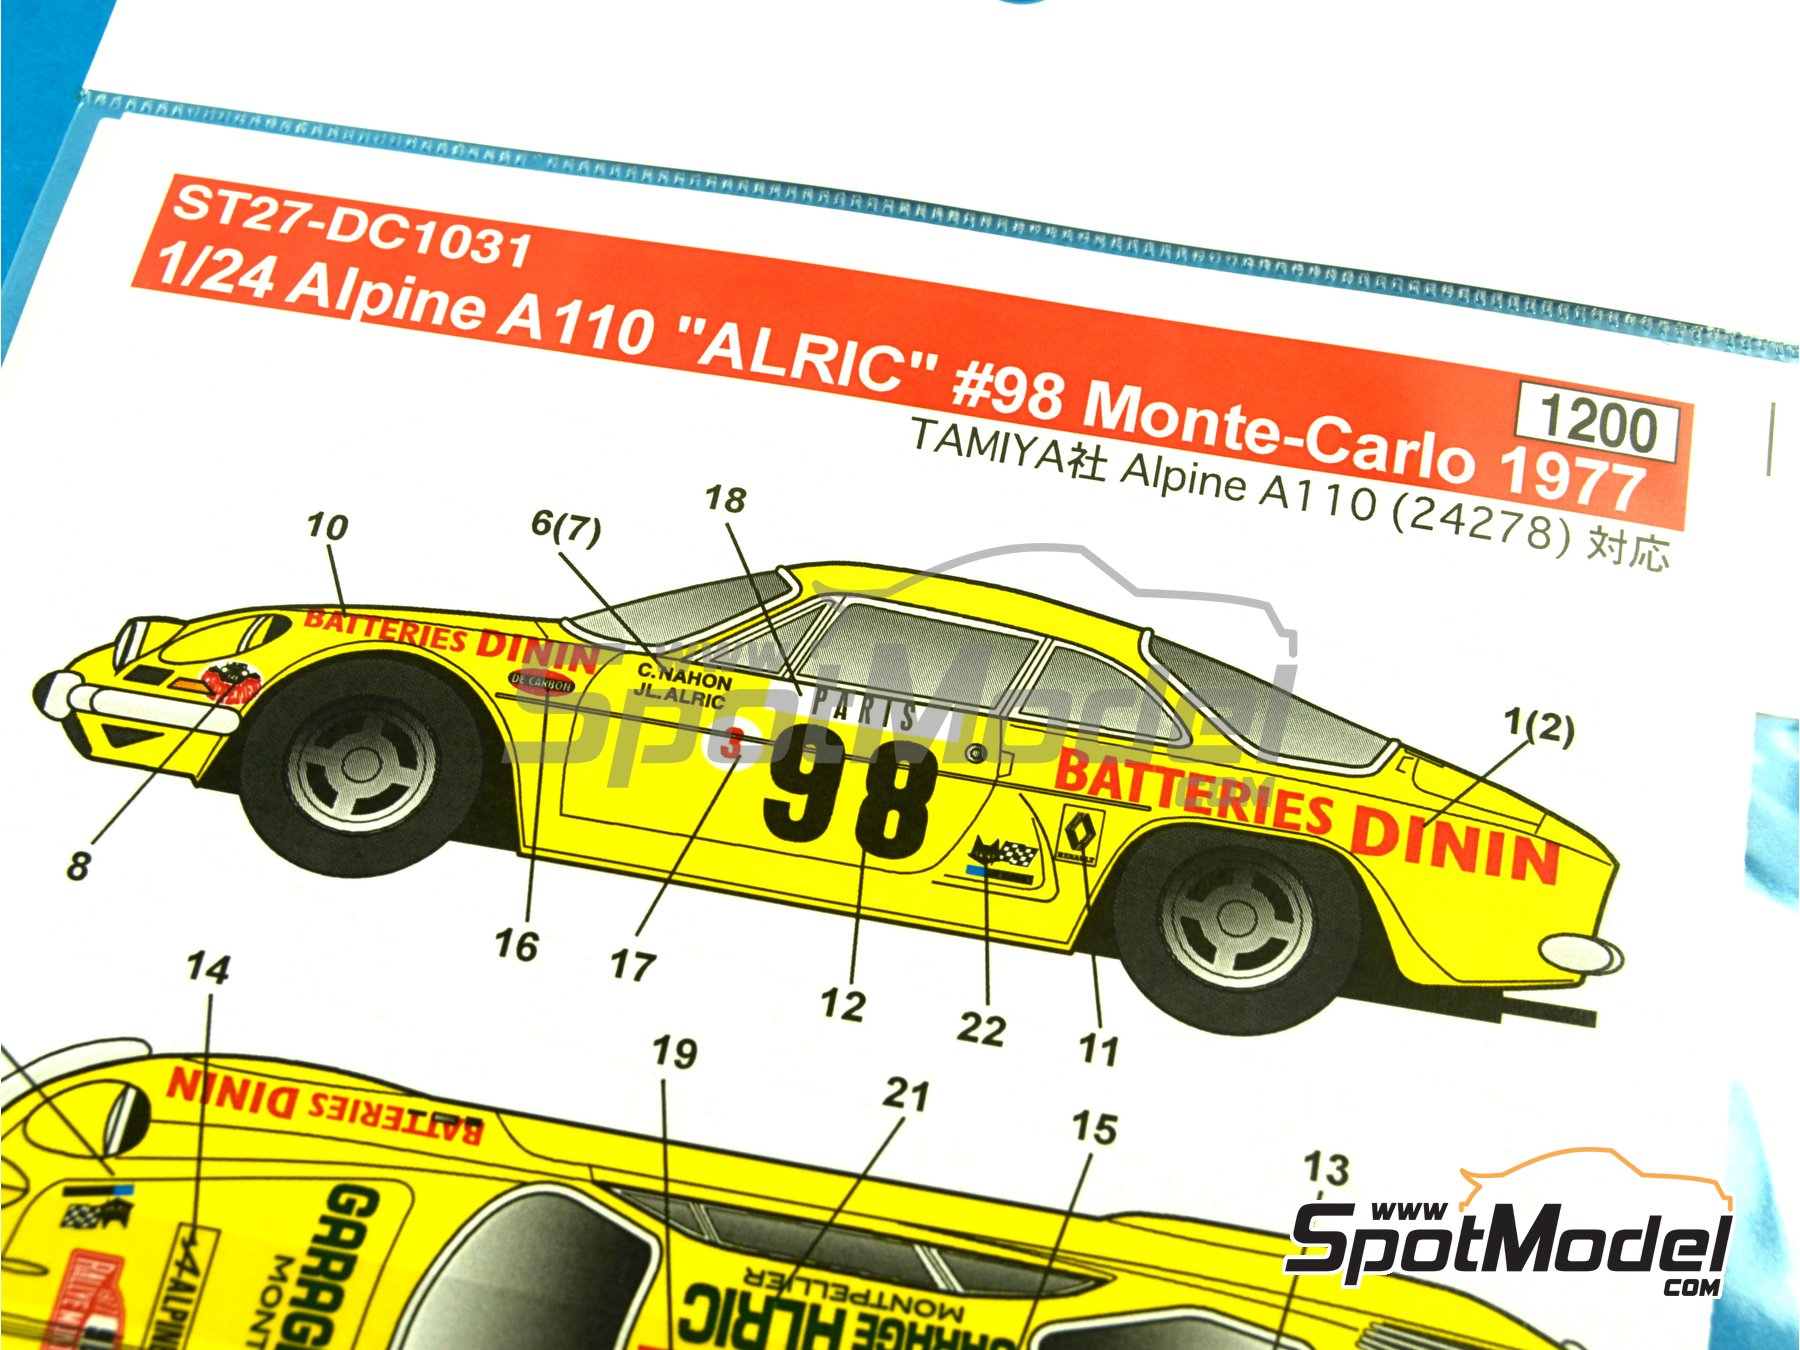 Image 6: Renault Alpine A110 Batteries Dinin - Montecarlo Rally - Rallye Automobile de Monte-Carlo 1977 | Marking / livery in 1/24 scale manufactured by Studio27 (ref. ST27-DC1031)